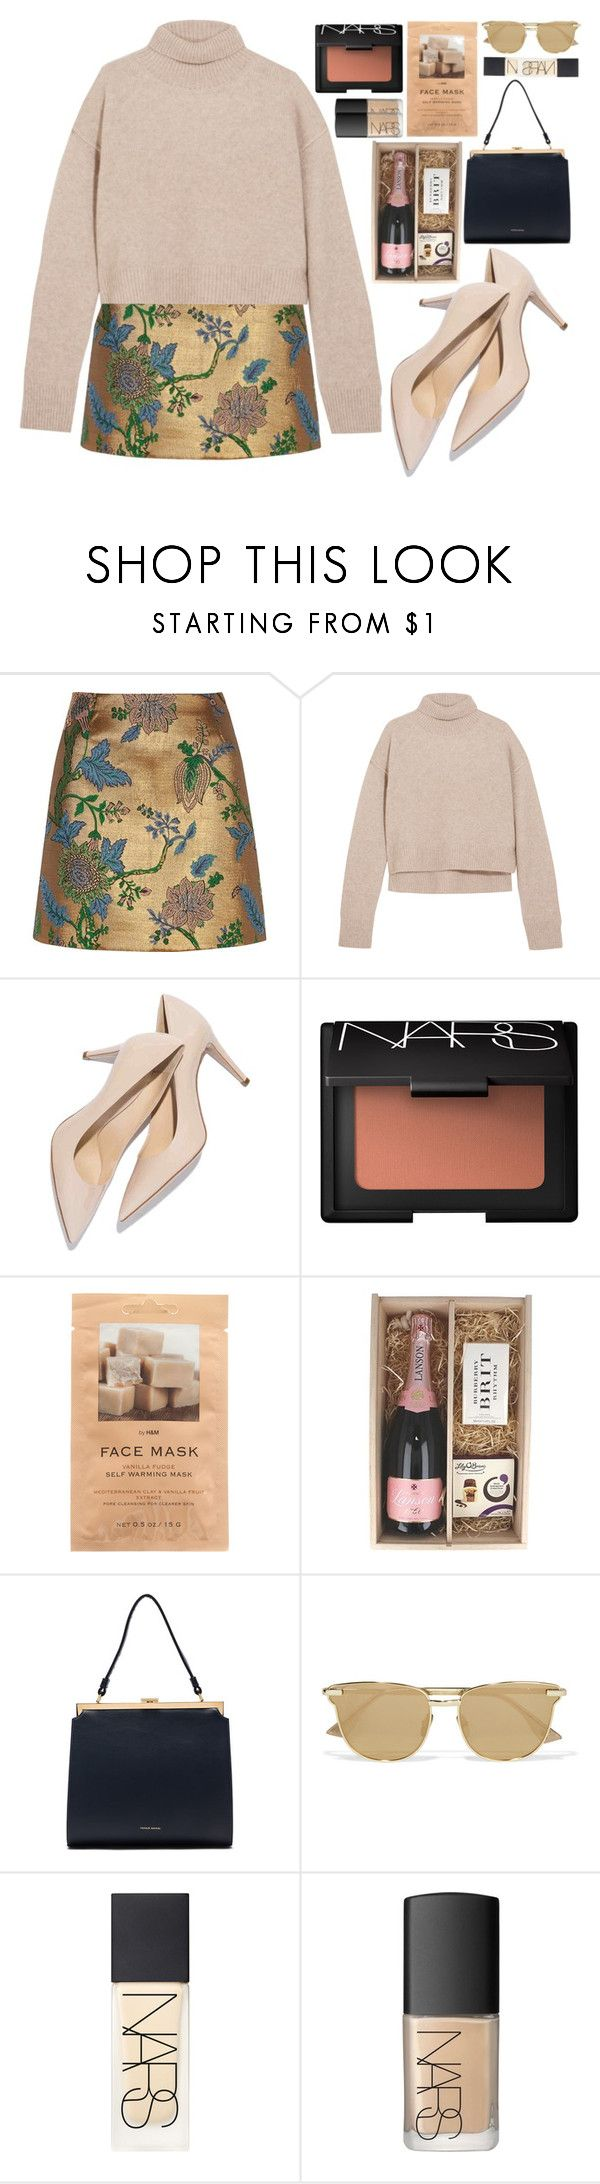 """""""SEPT 22"""" by mariimontero ❤ liked on Polyvore featuring River Island, Rejina Pyo, M. Gemi, NARS Cosmetics, H&M, Mansur Gavriel and Le Specs"""